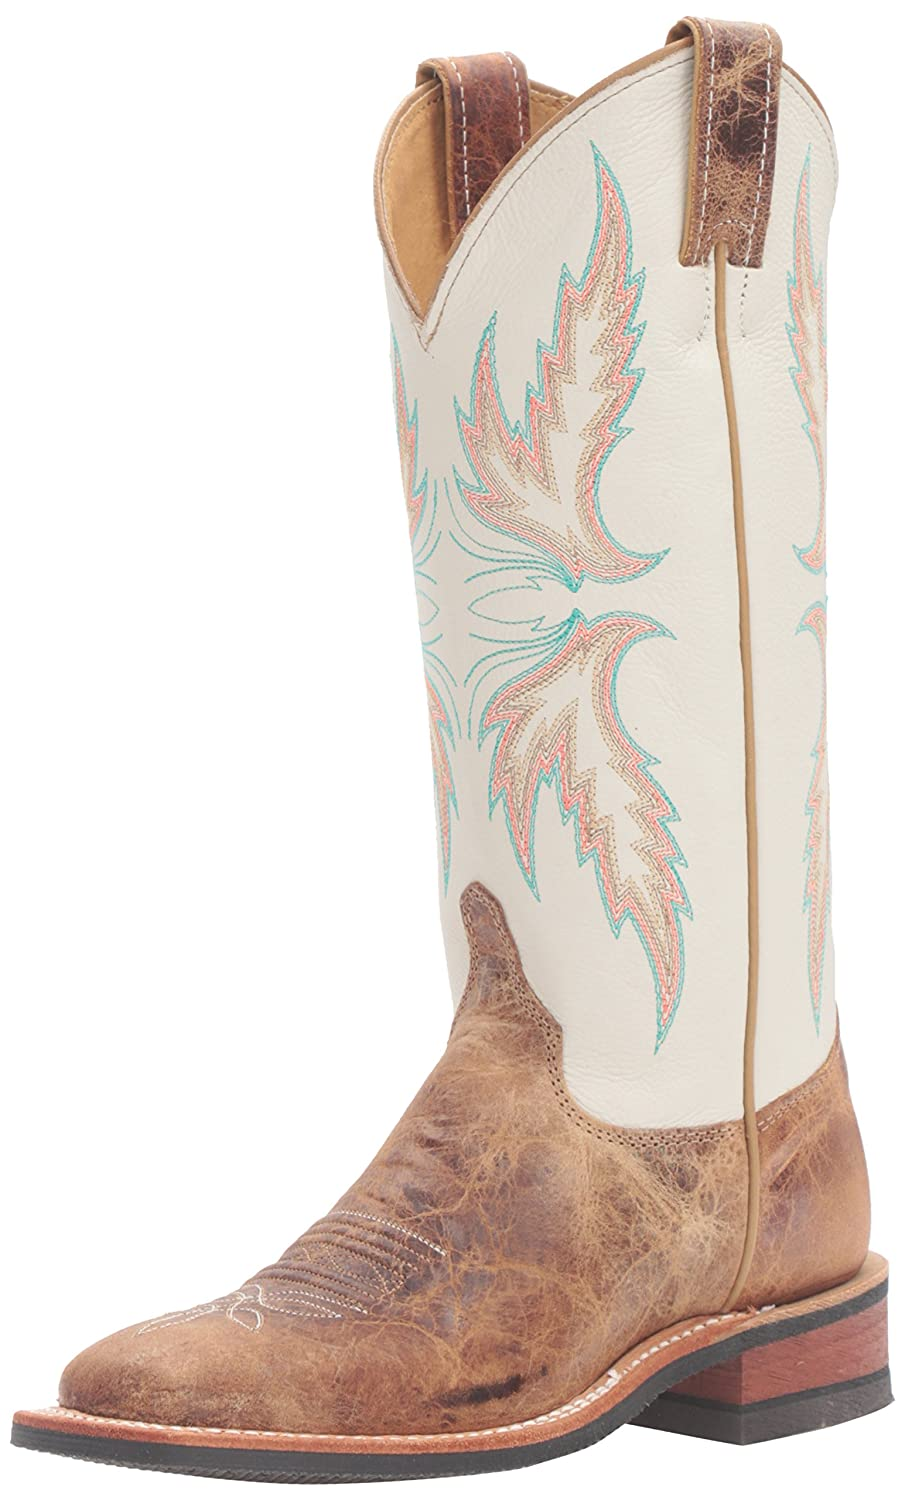 c9469644a93 Justin Boots Women's USA Bent Rail Collection 13